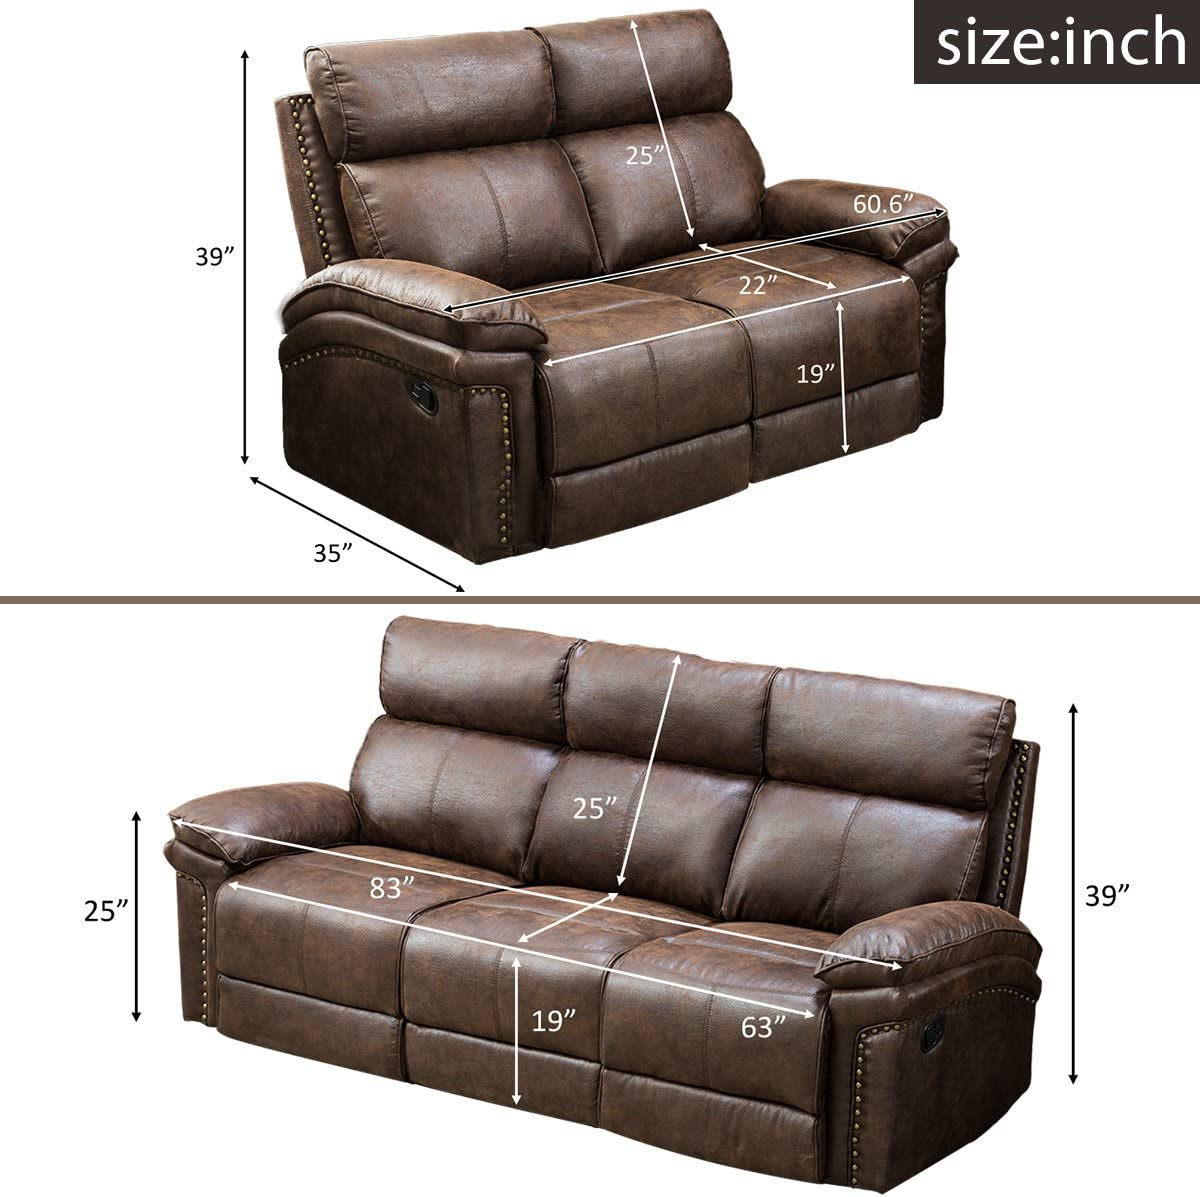 Harper Bright Designs Bonded New-tech Farbric Sectional Recliner Sofa Set Brown Loveseat 3-Seat Recliner